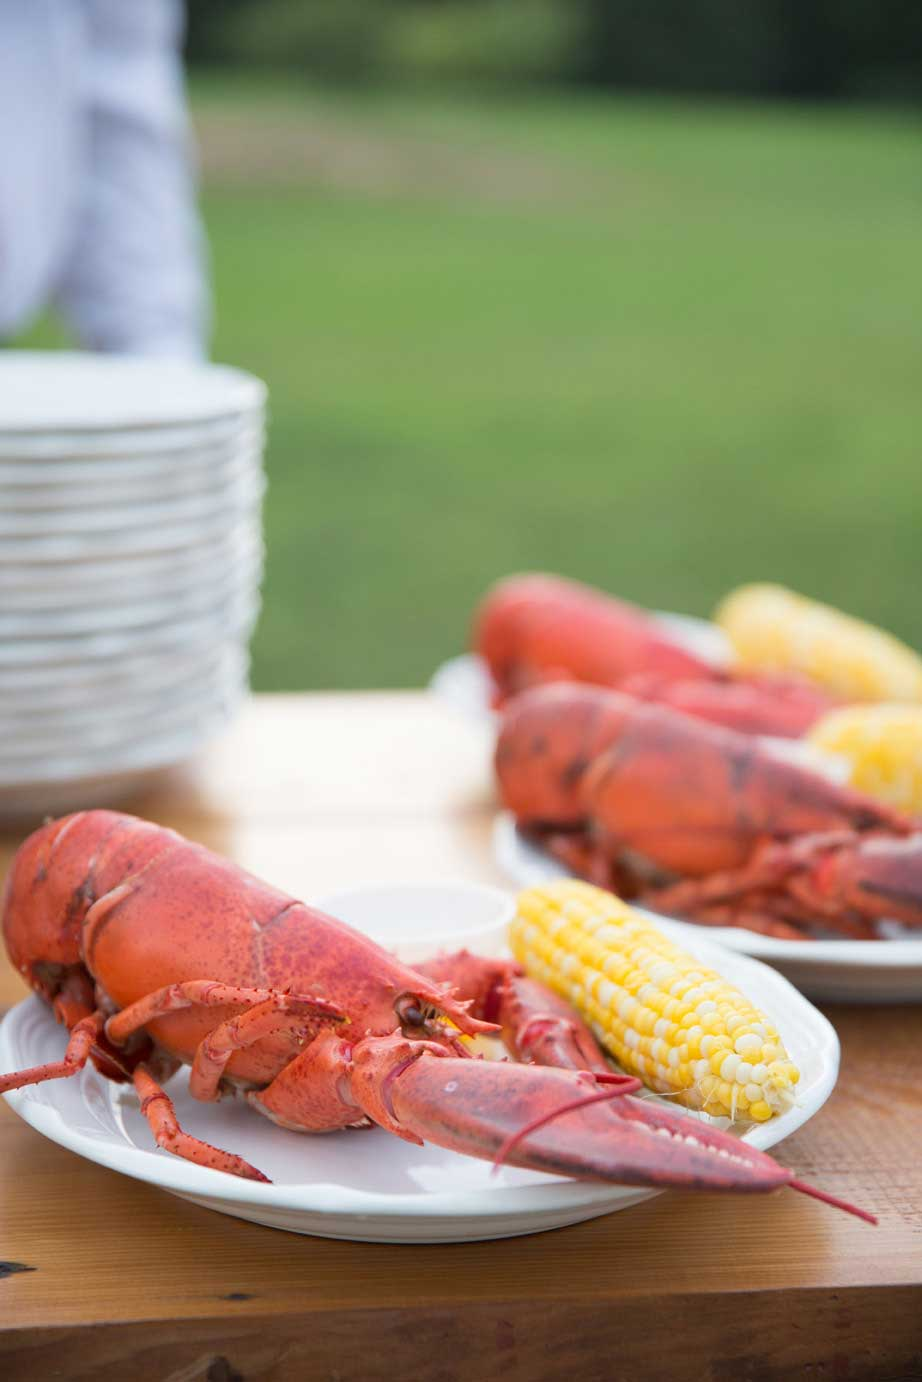 The way it should be... A one and a quarter pound lobster served beside fresh drawn butter for a Maine wedding feast. Photo Courtesy of Kivalo Photography http://kivalophotographyblog.com